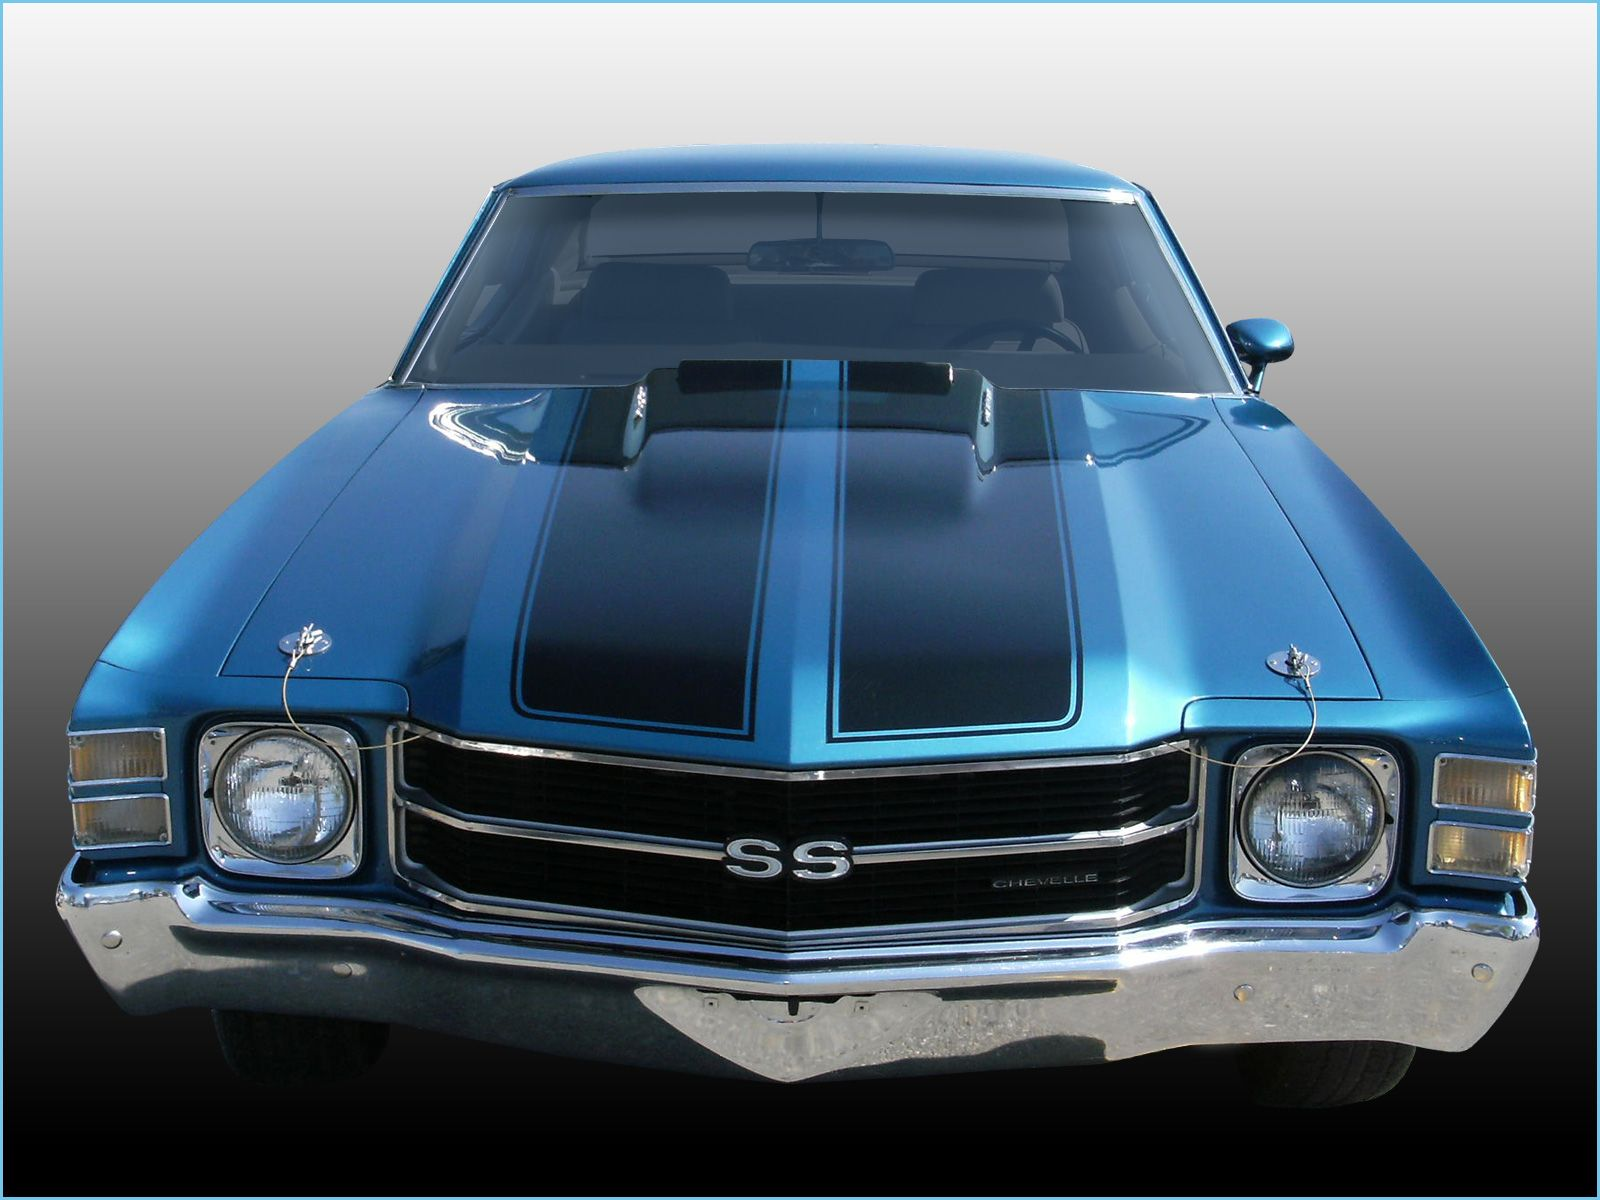 Chevelle Ss Blue Coupe Front View Chevelle Muscle Cars High